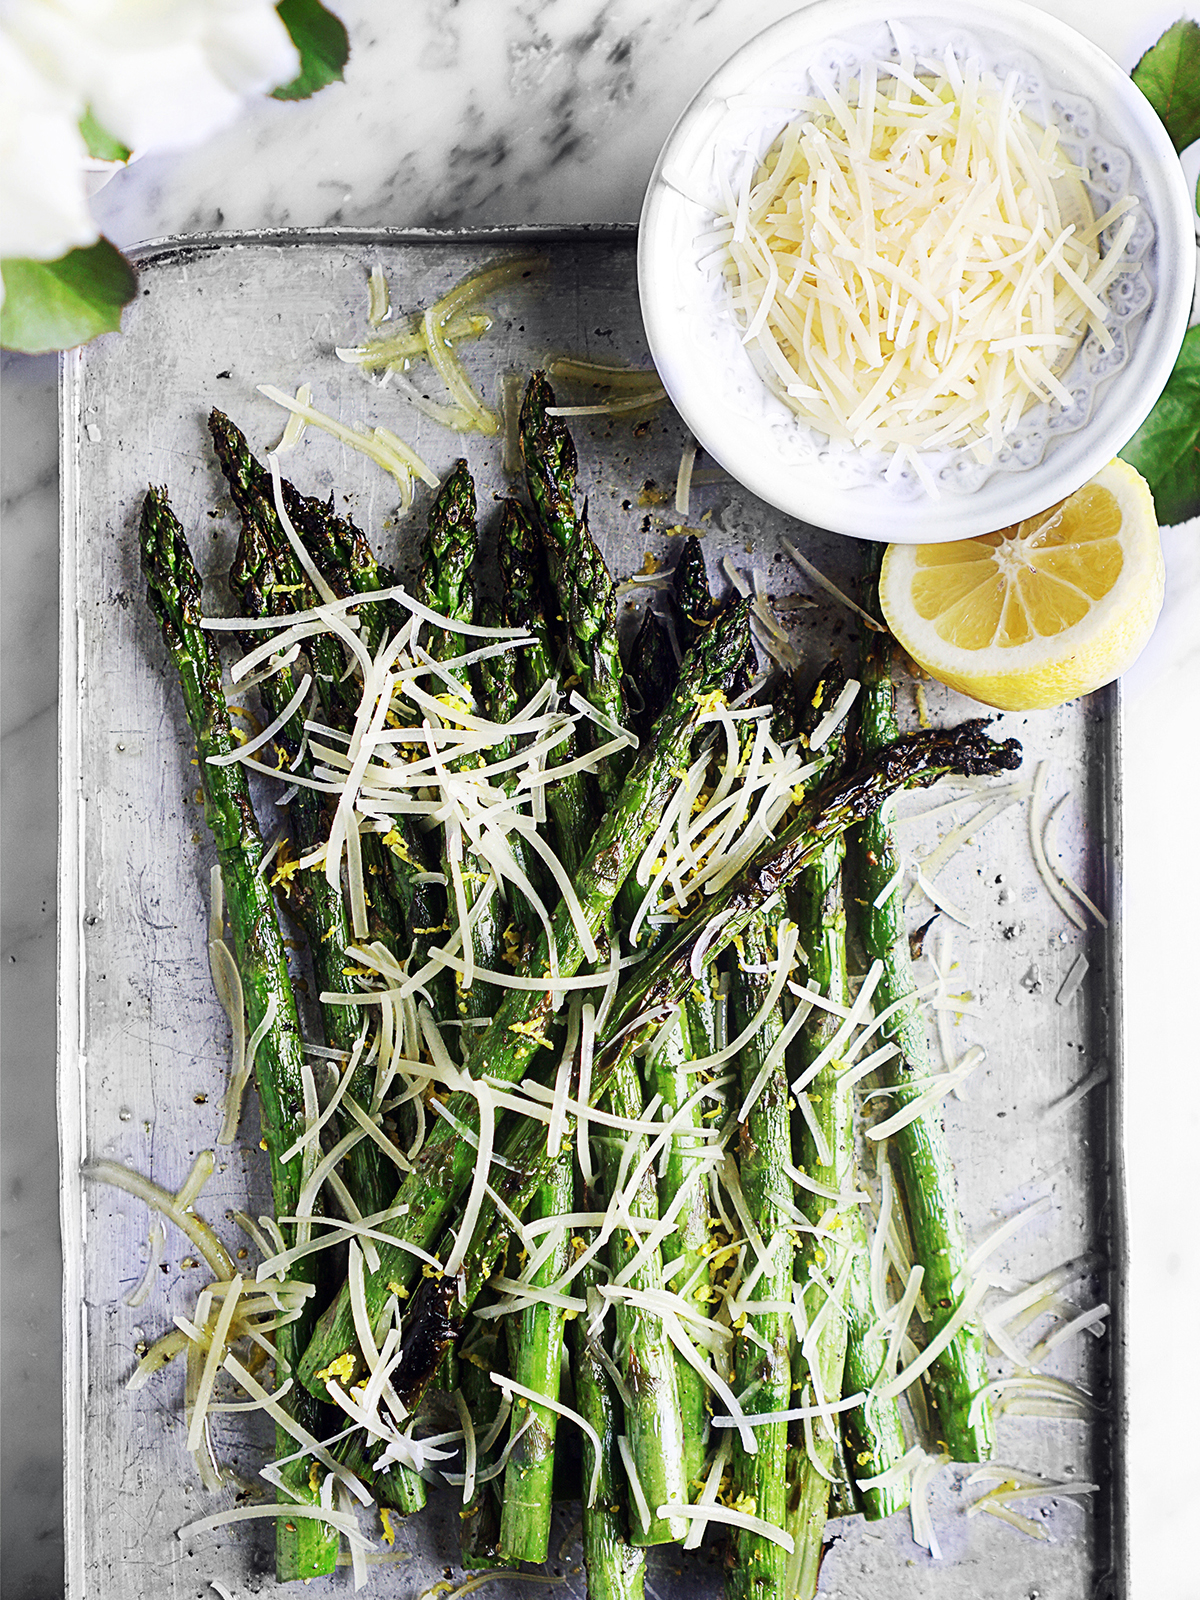 Esparragos asados on a metal baking tray with a small bowl of shredded parmesan